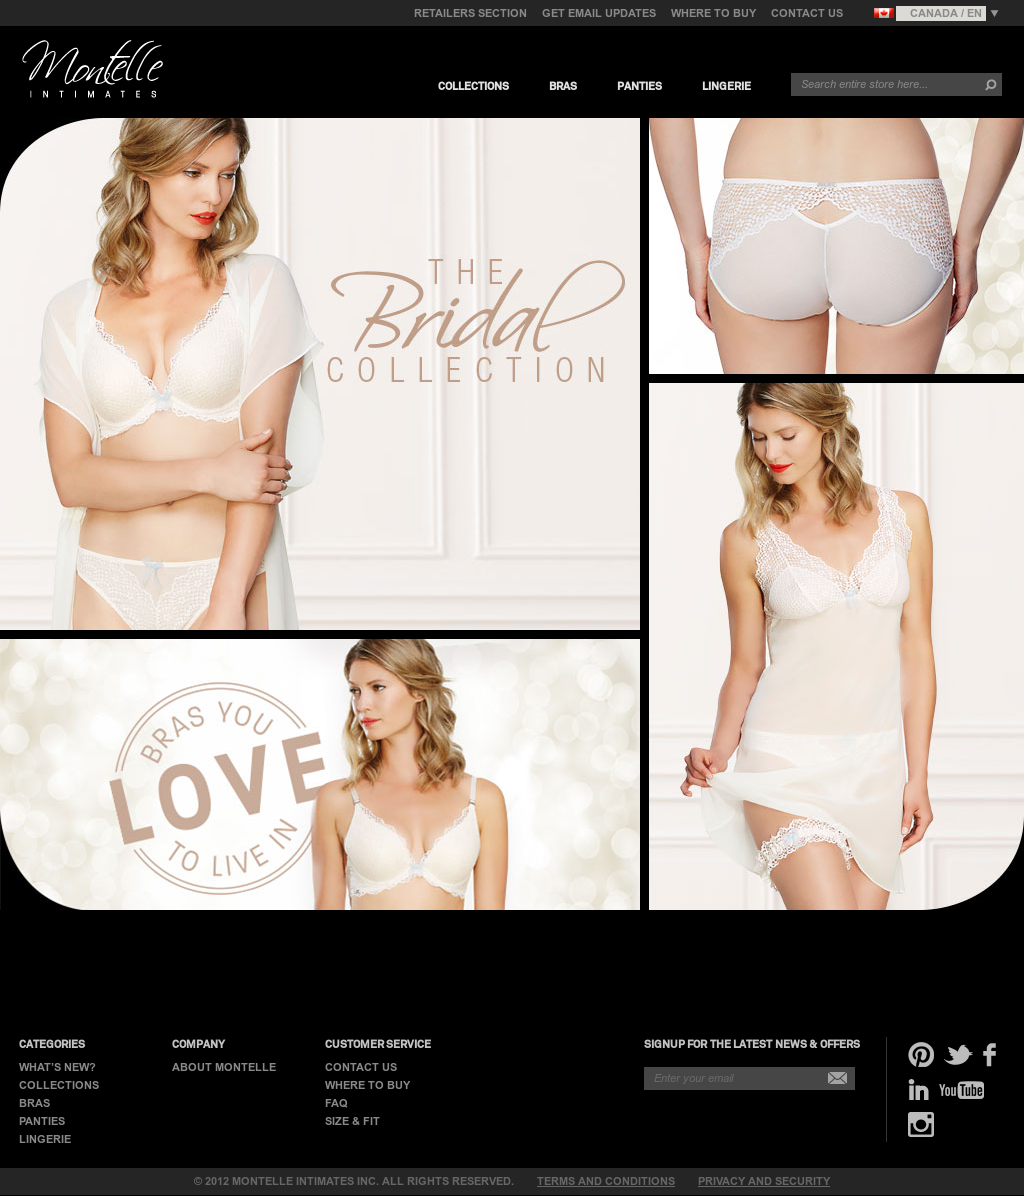 Montelle Intimates Competitors, Revenue and Employees - Owler Company Profile